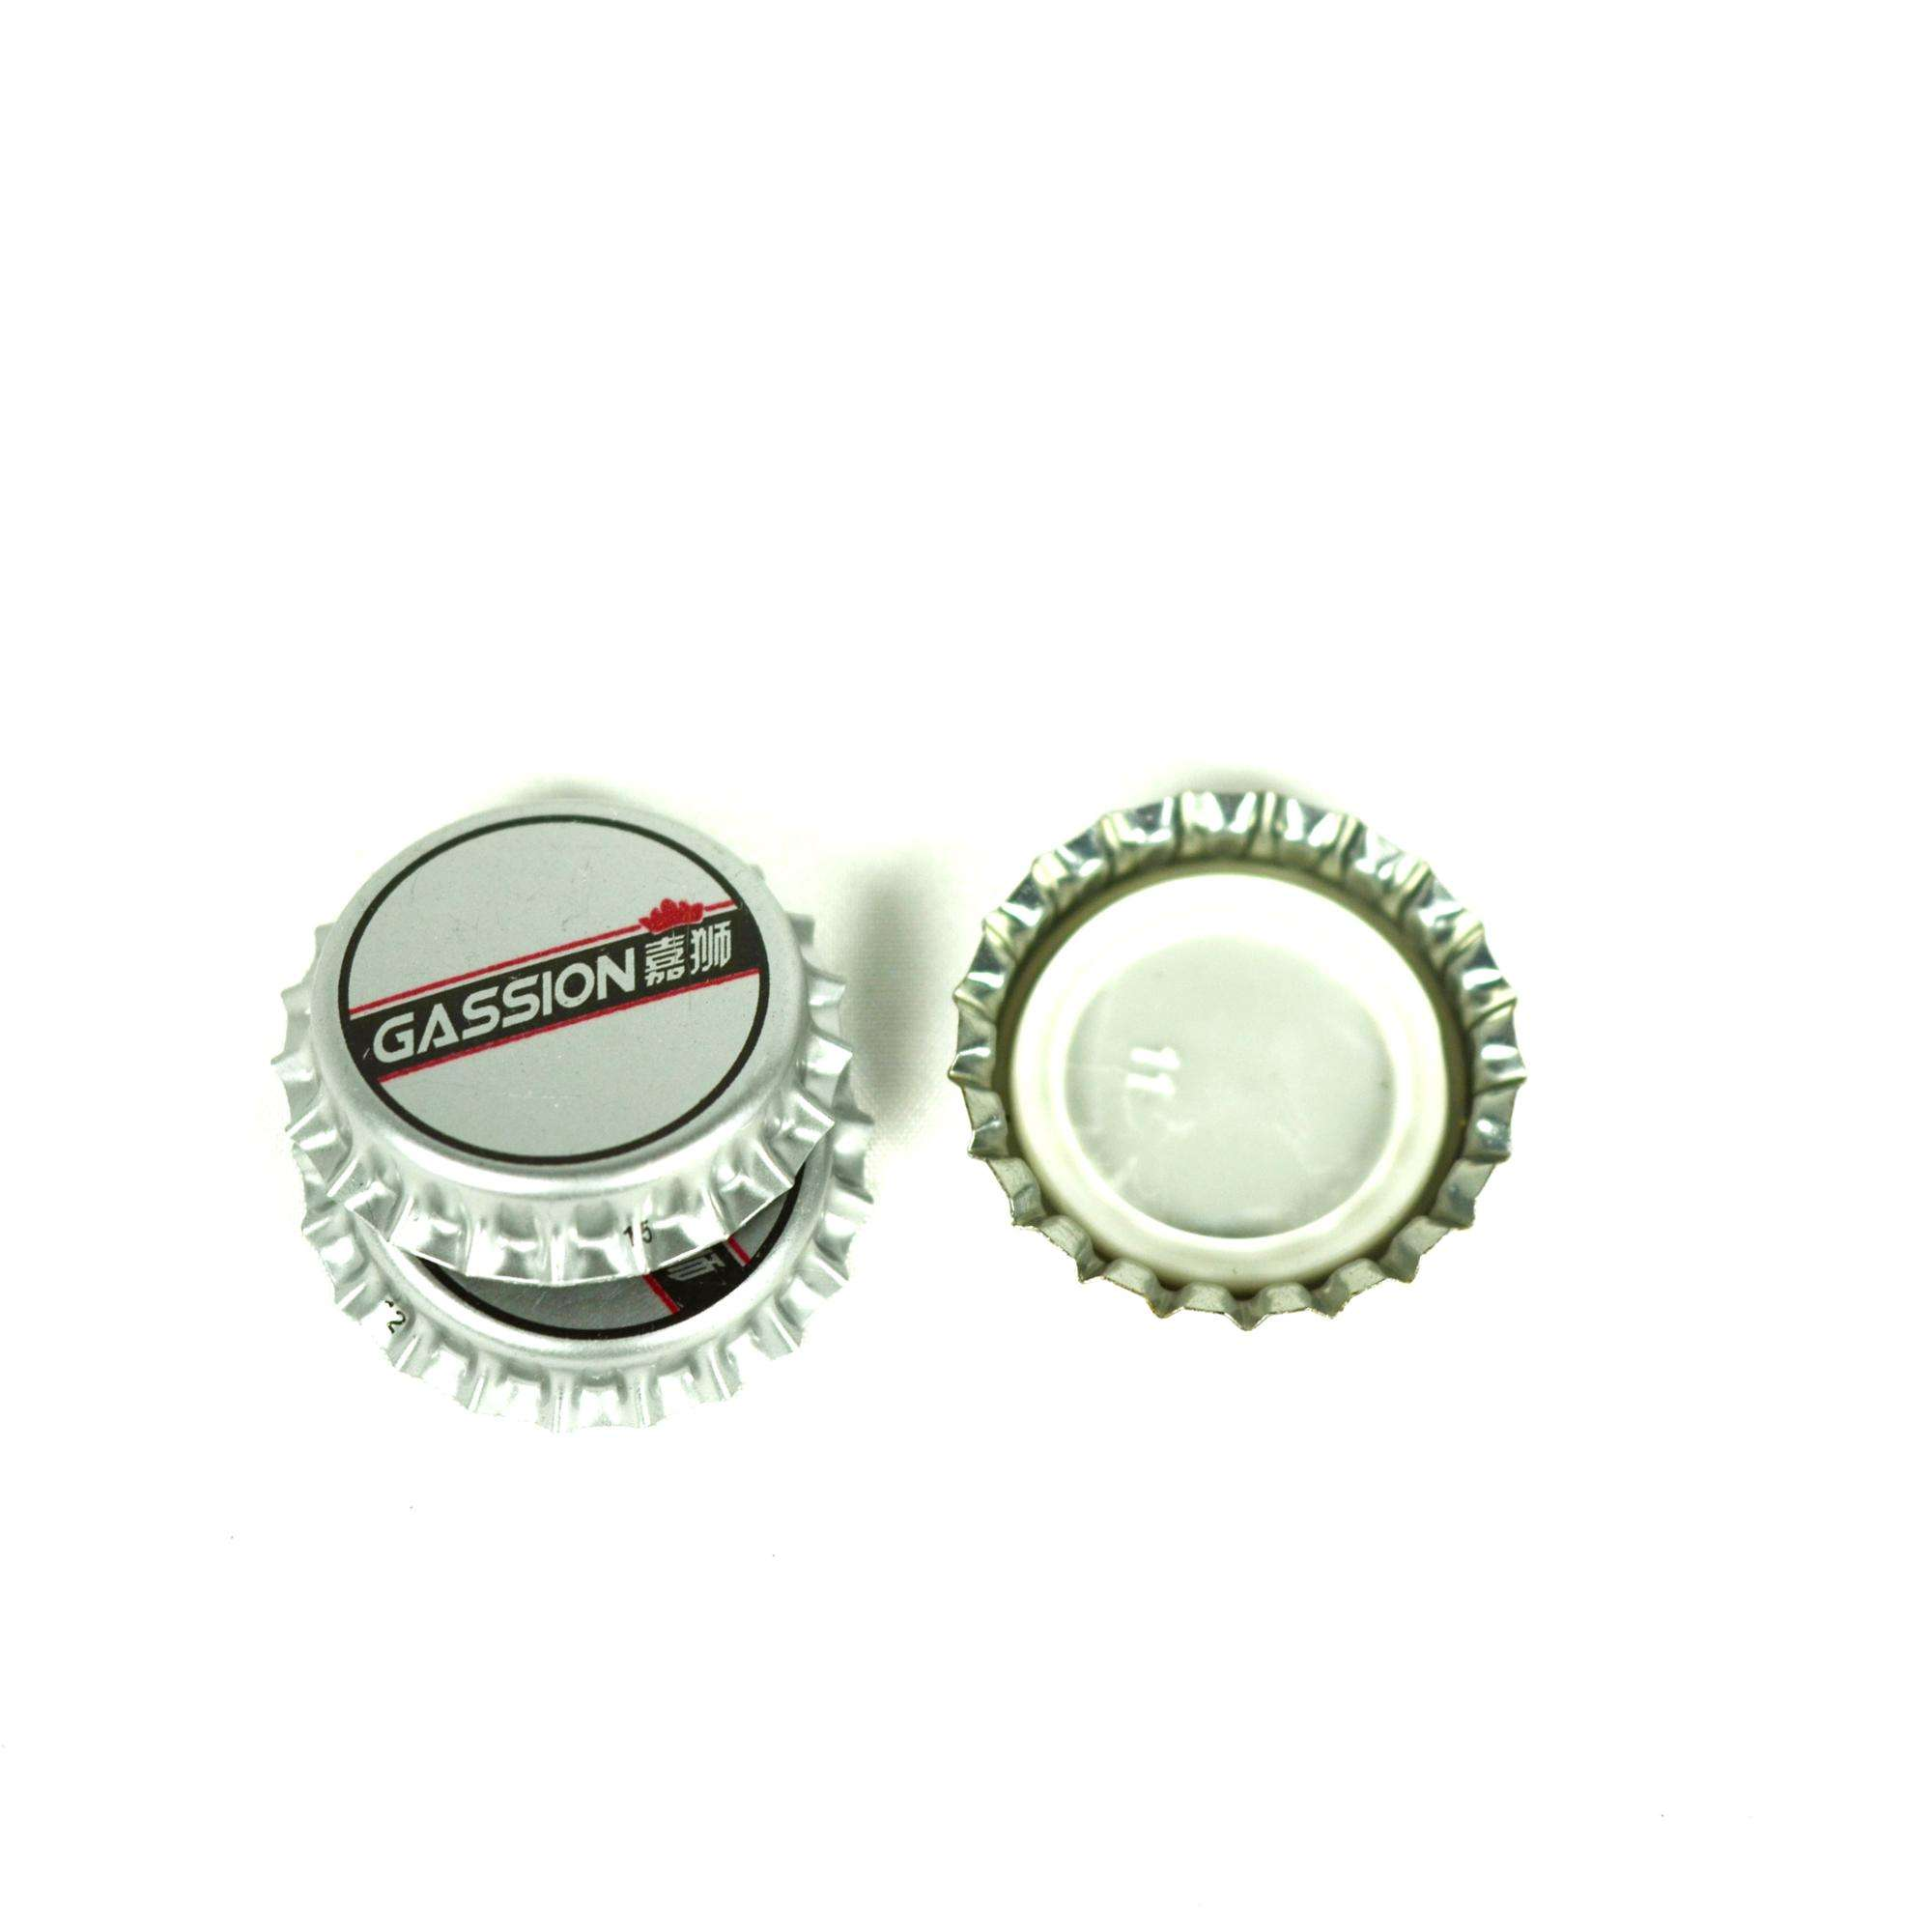 26mm standard beer bottle crown cap cider soda bottle crown cap